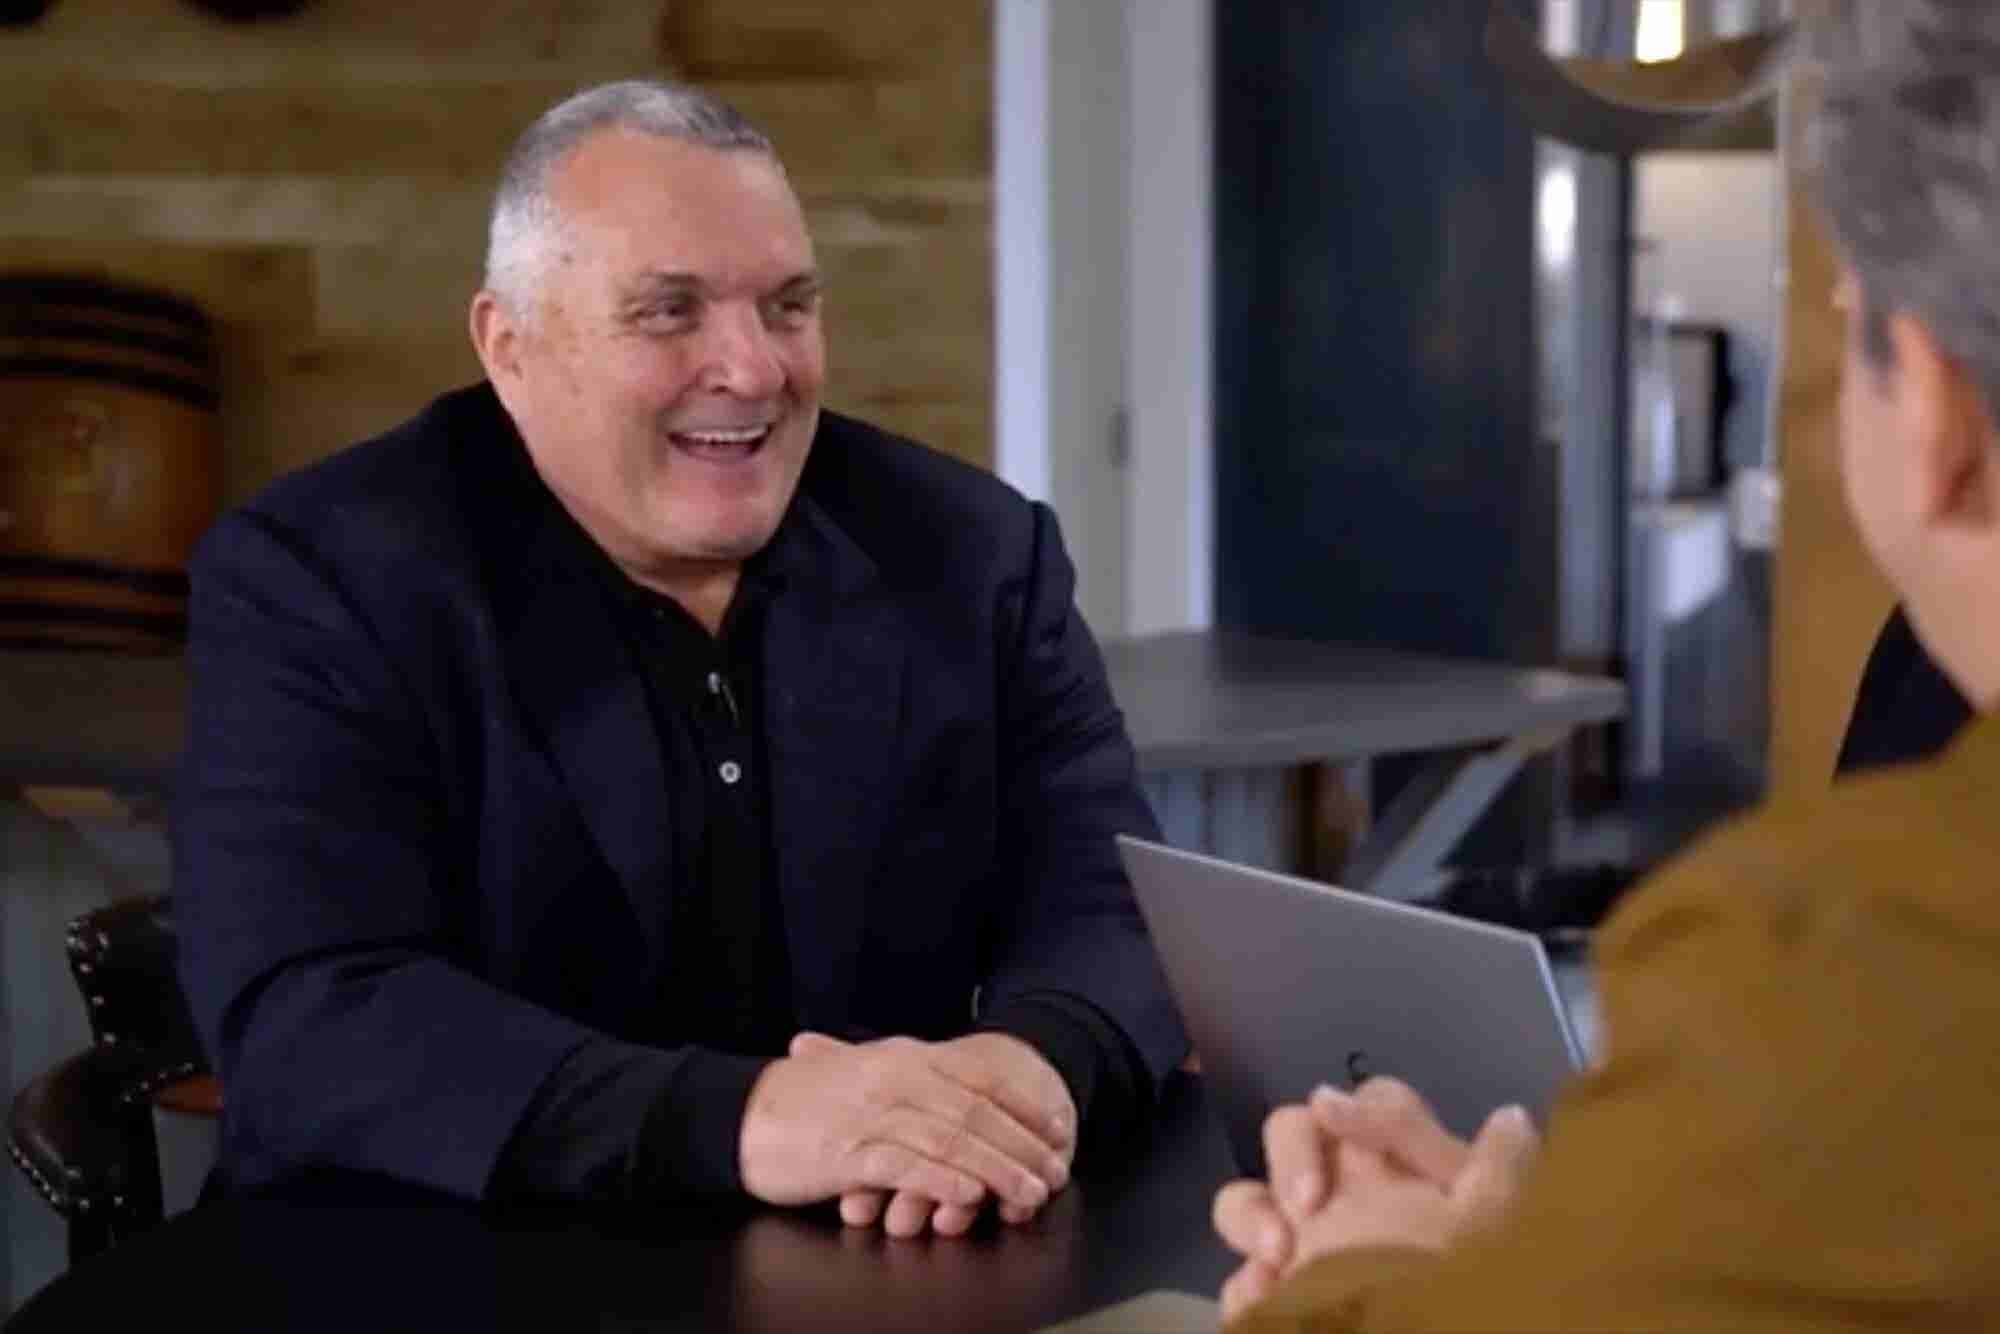 Notre Dame Football Legend Rudy Ruettiger Conquers Odds and Hearts